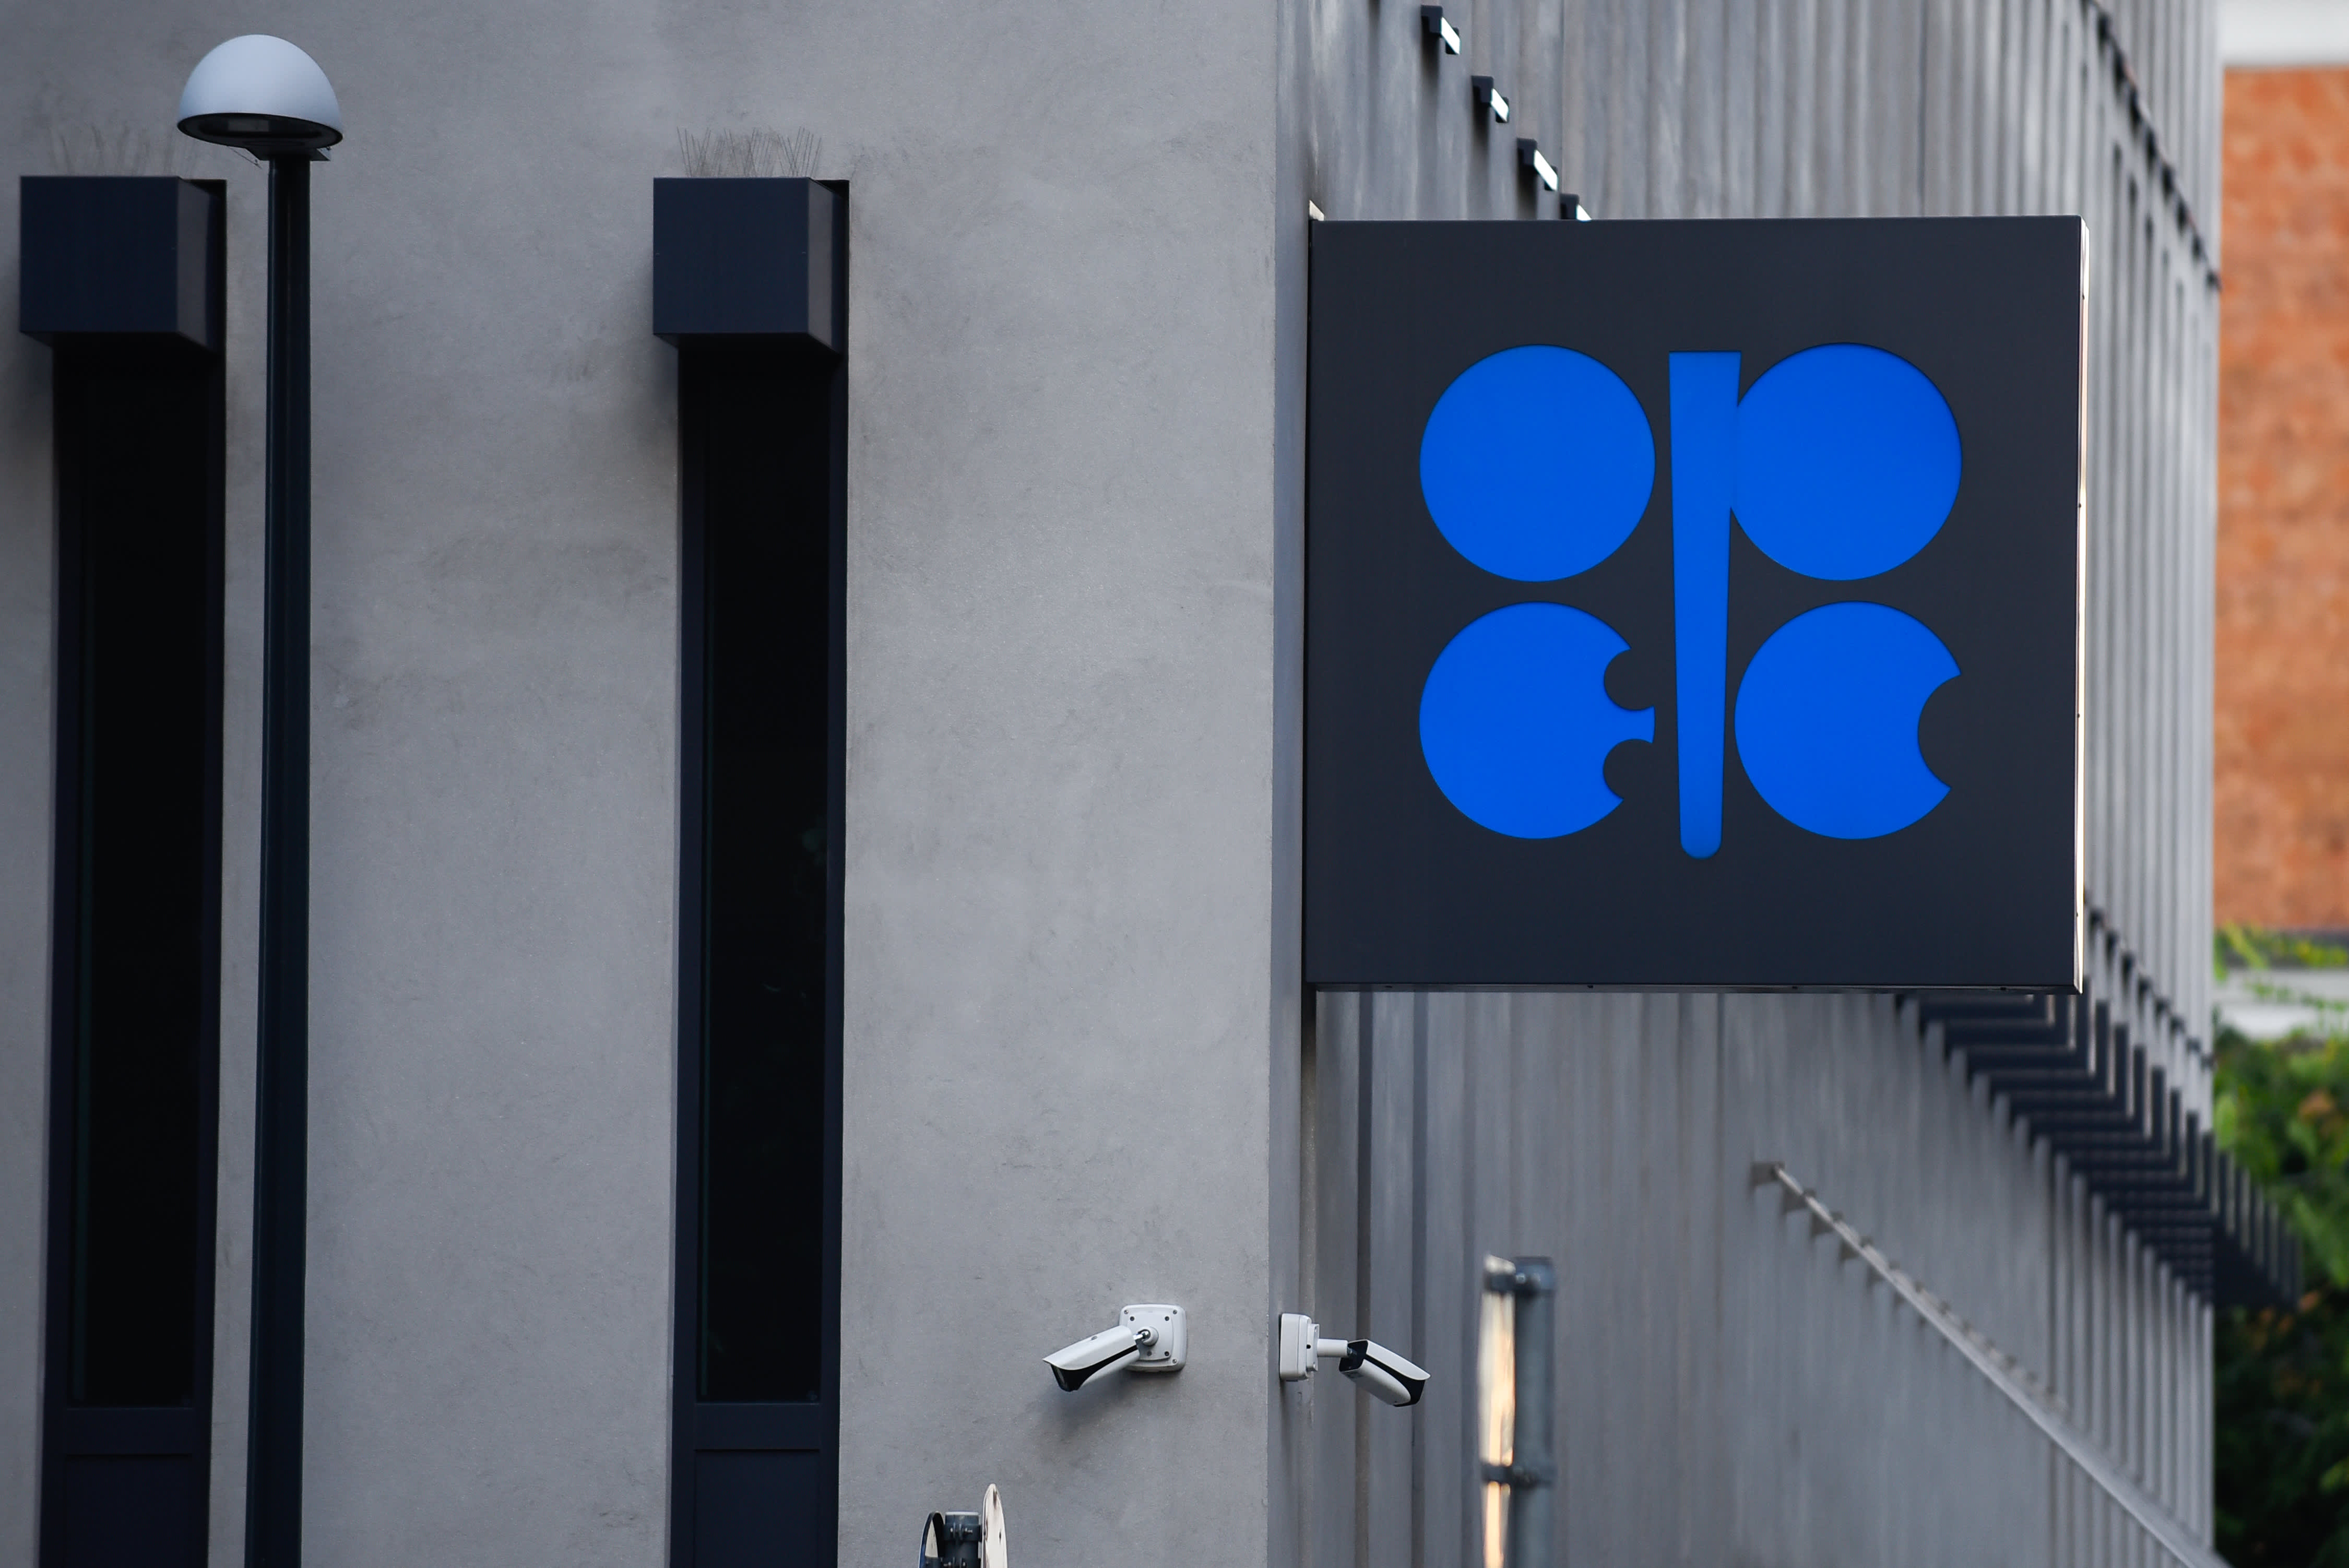 OPEC reportedly considering large production cut as coronavirus prompts crude collapse